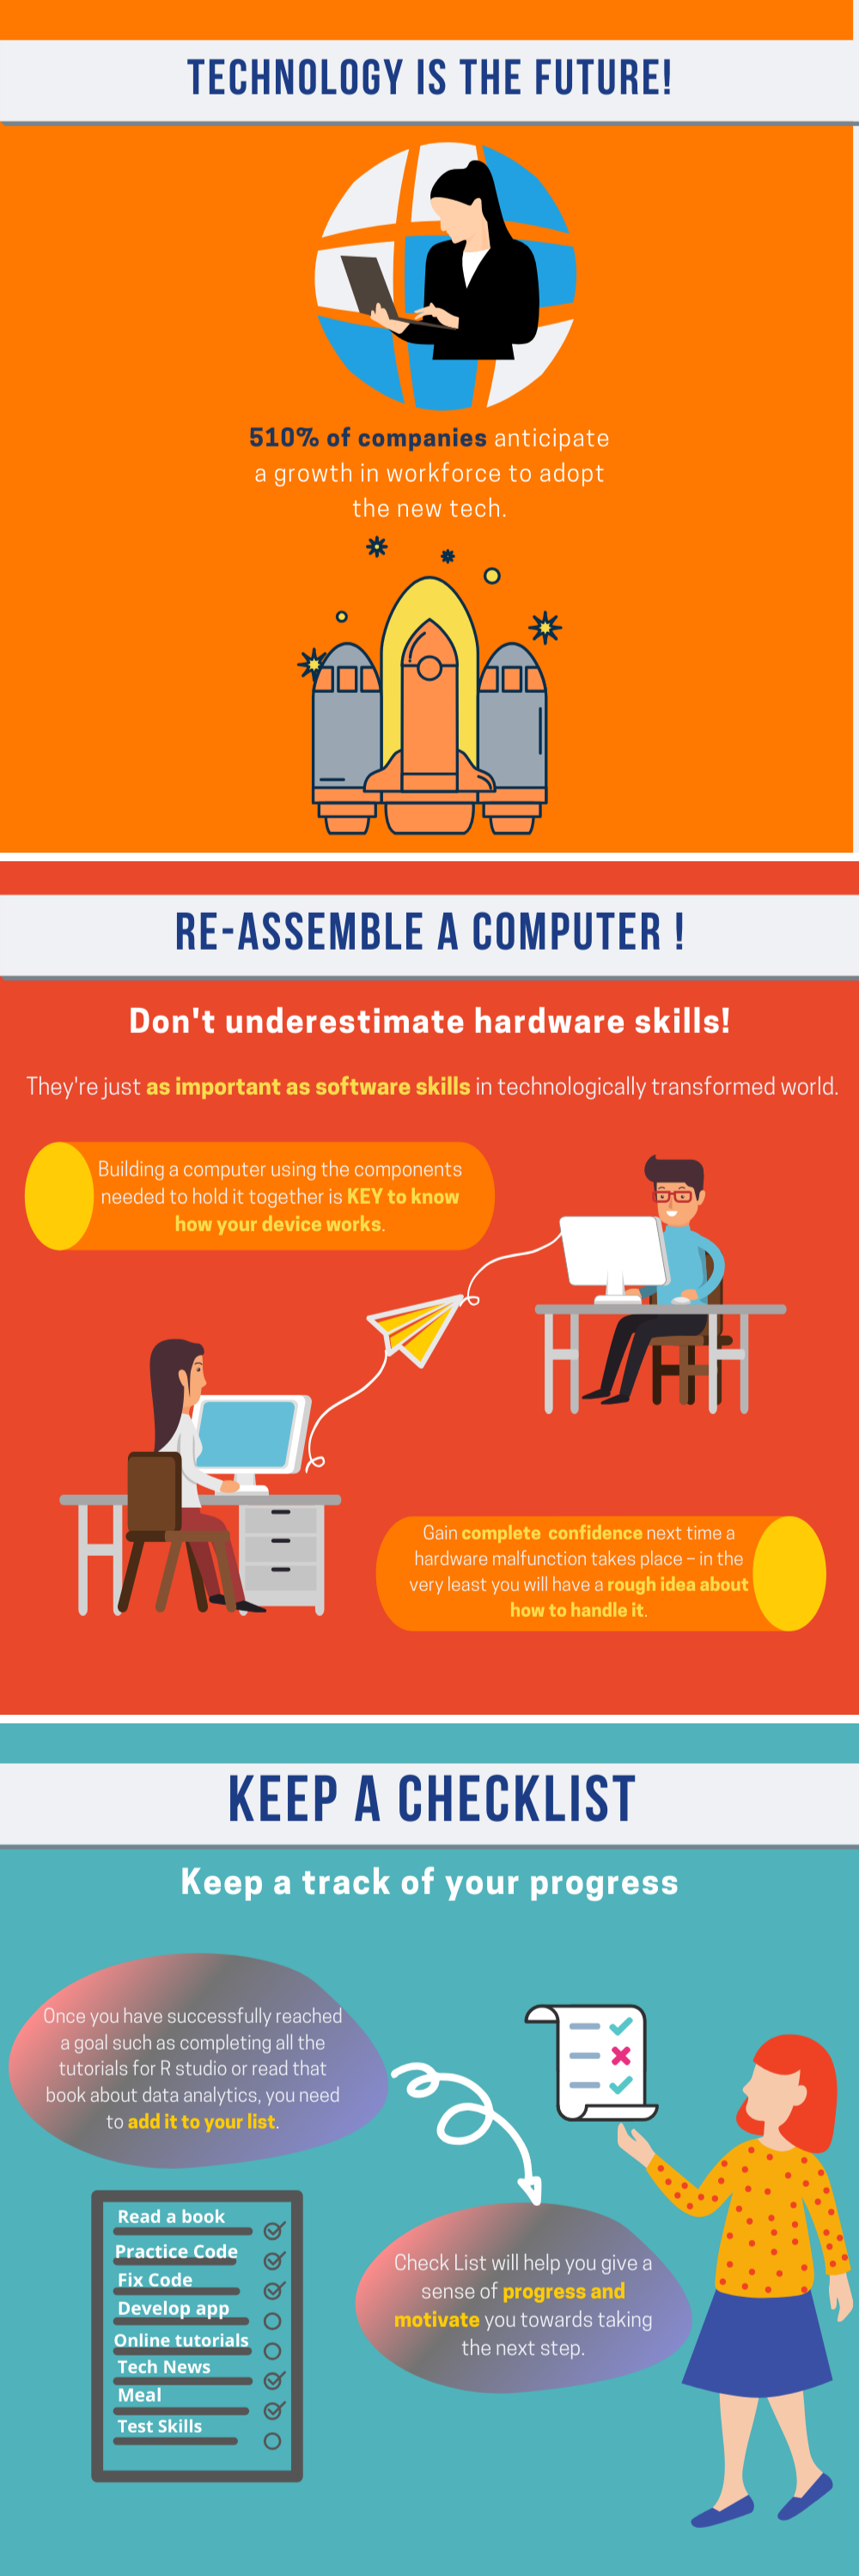 10 Ways to Improve Your Tech Skills at Home